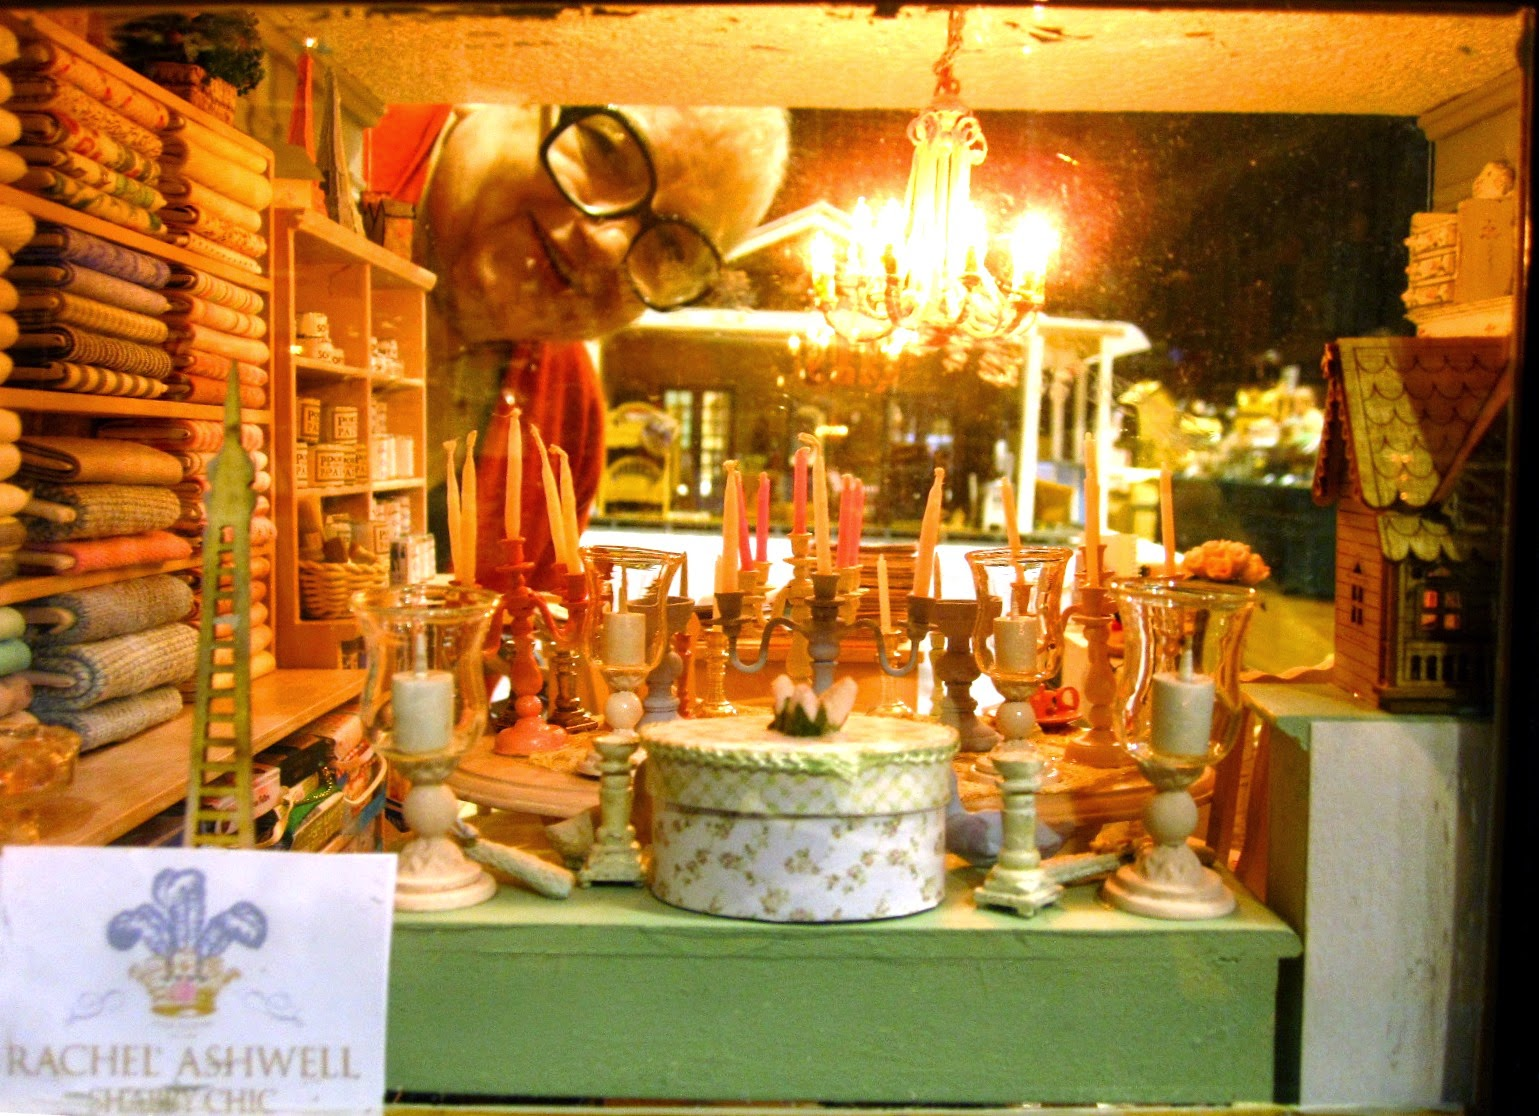 Looking through the front window of a miniature shabby chic shop with the owner peeking in from the back,